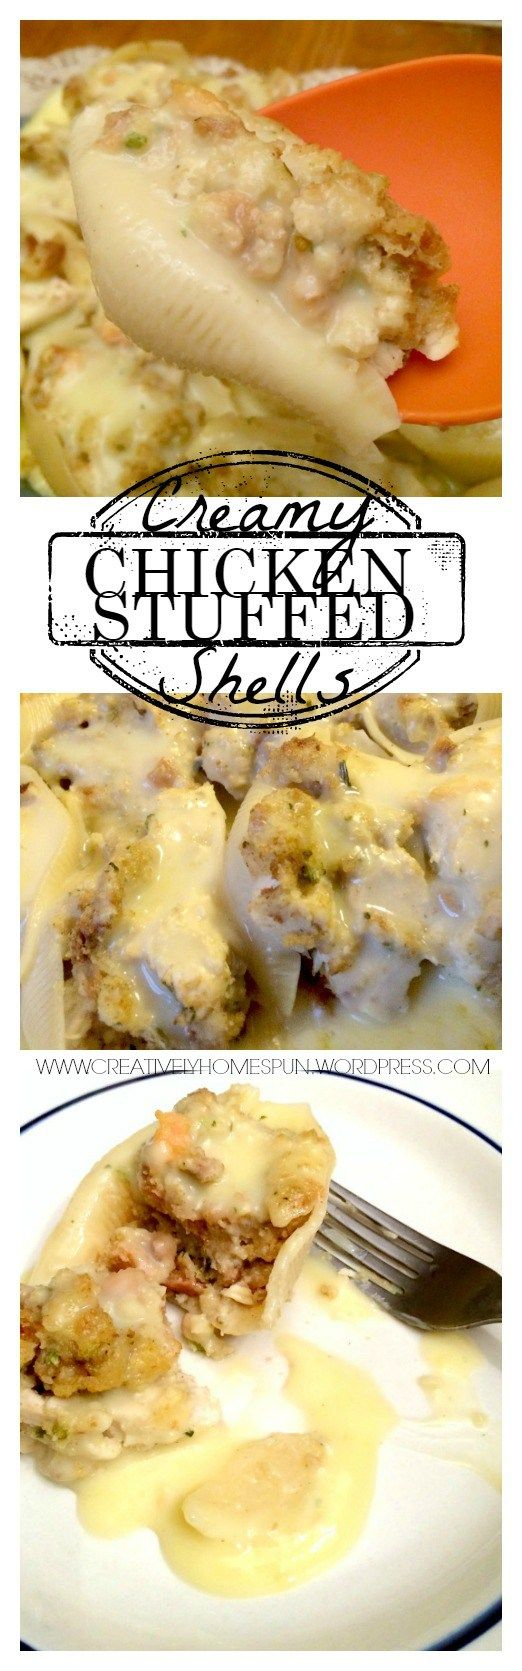 Stuffed chicken shells - Make dairy free by making gravy from almond milk, chicken broth and corn starch